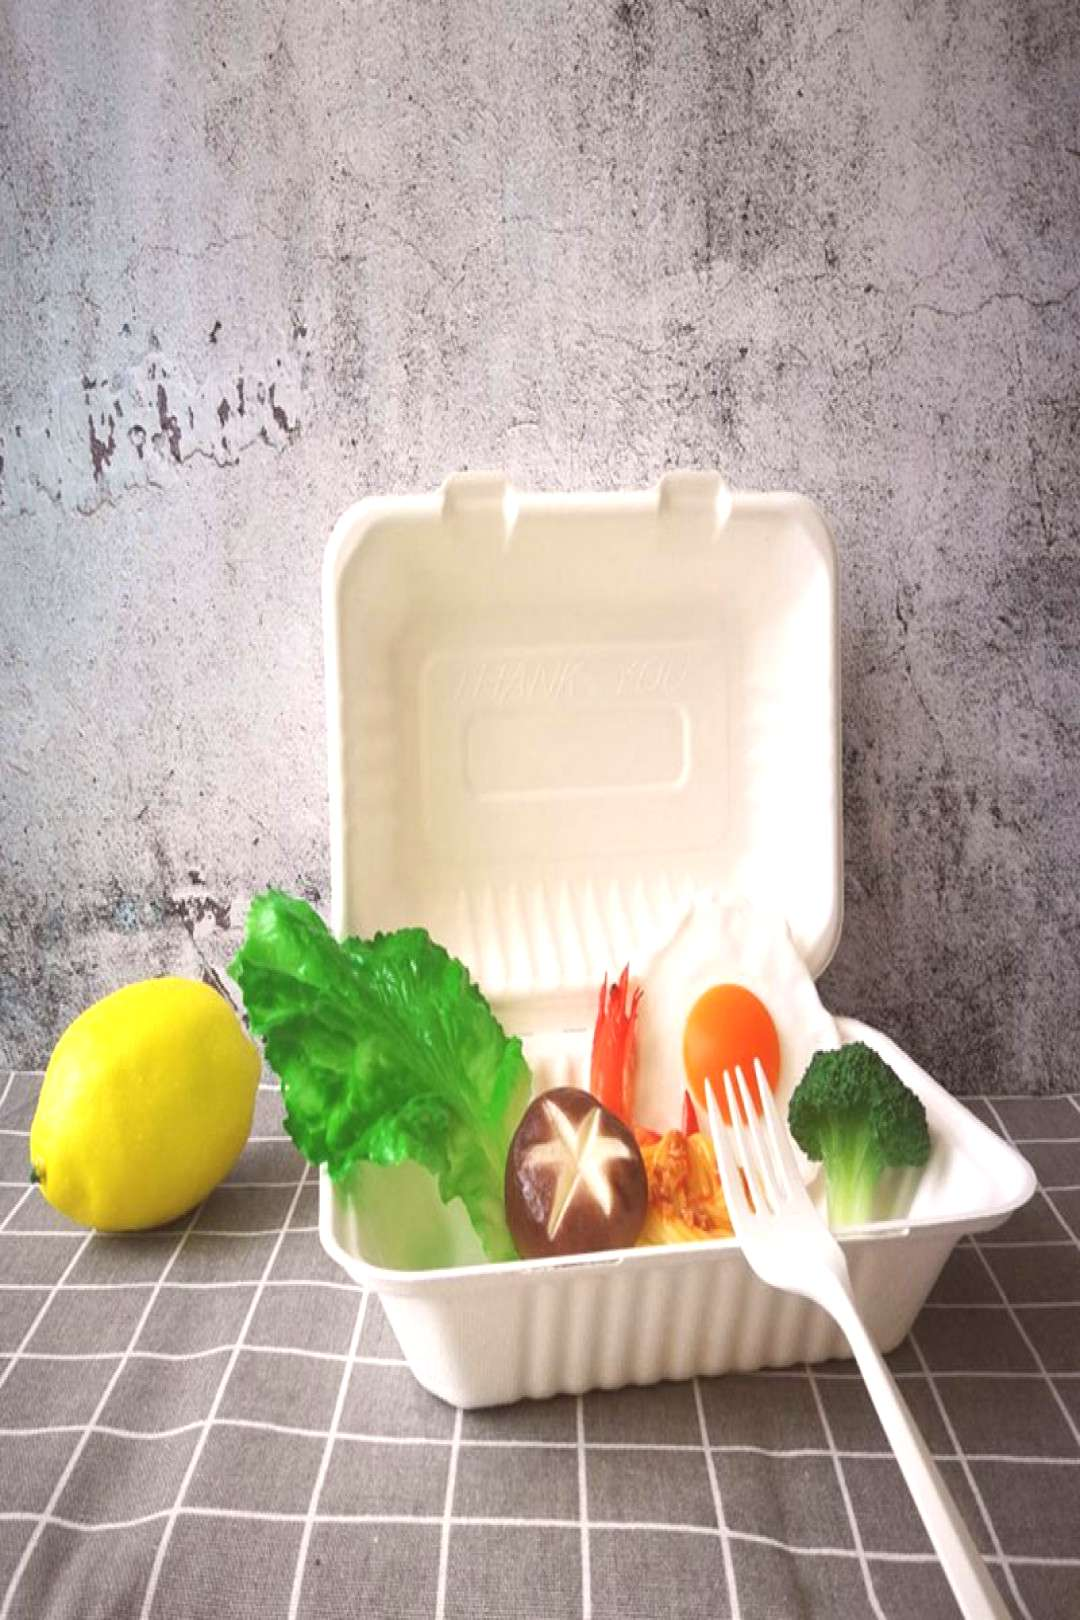 50Pcs/Bag 800ML Healthy Disposable Takeout Box Degradable Anti-leak Food Containers for School Rest